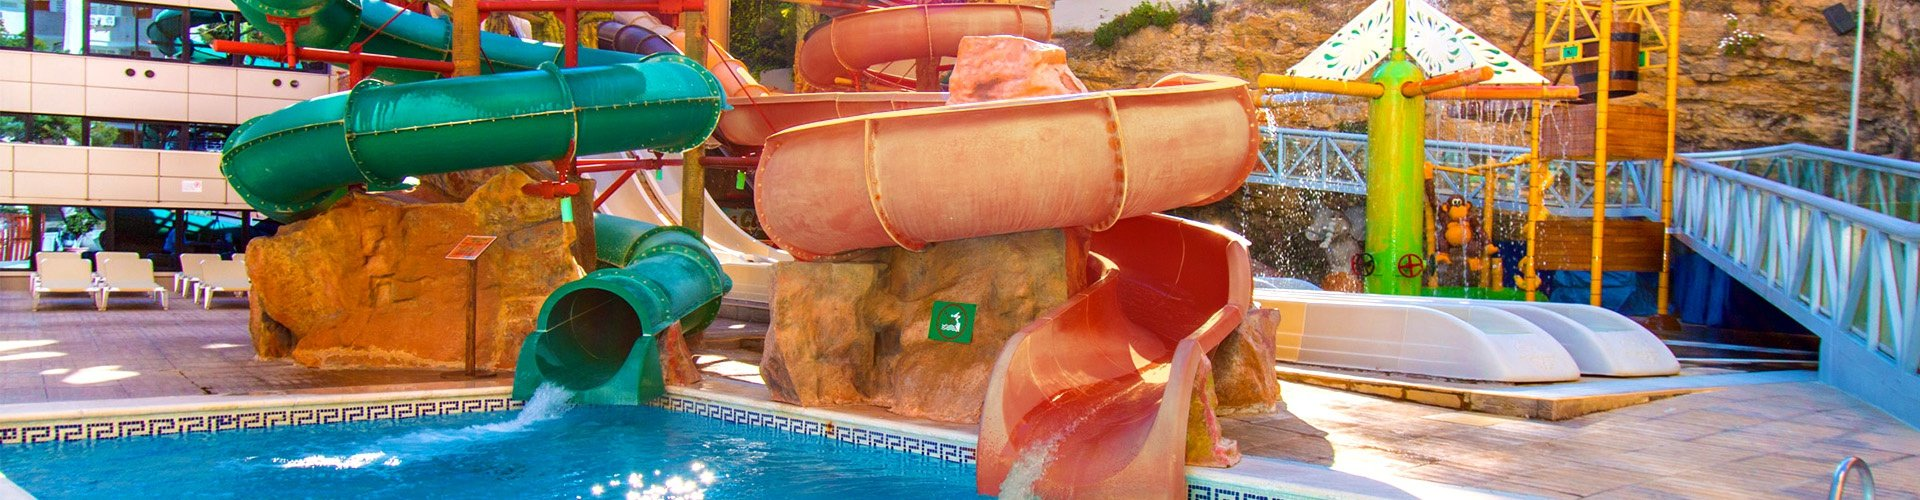 Magic Aqua™ Rock Gardens - Benidorm - oferta detalle